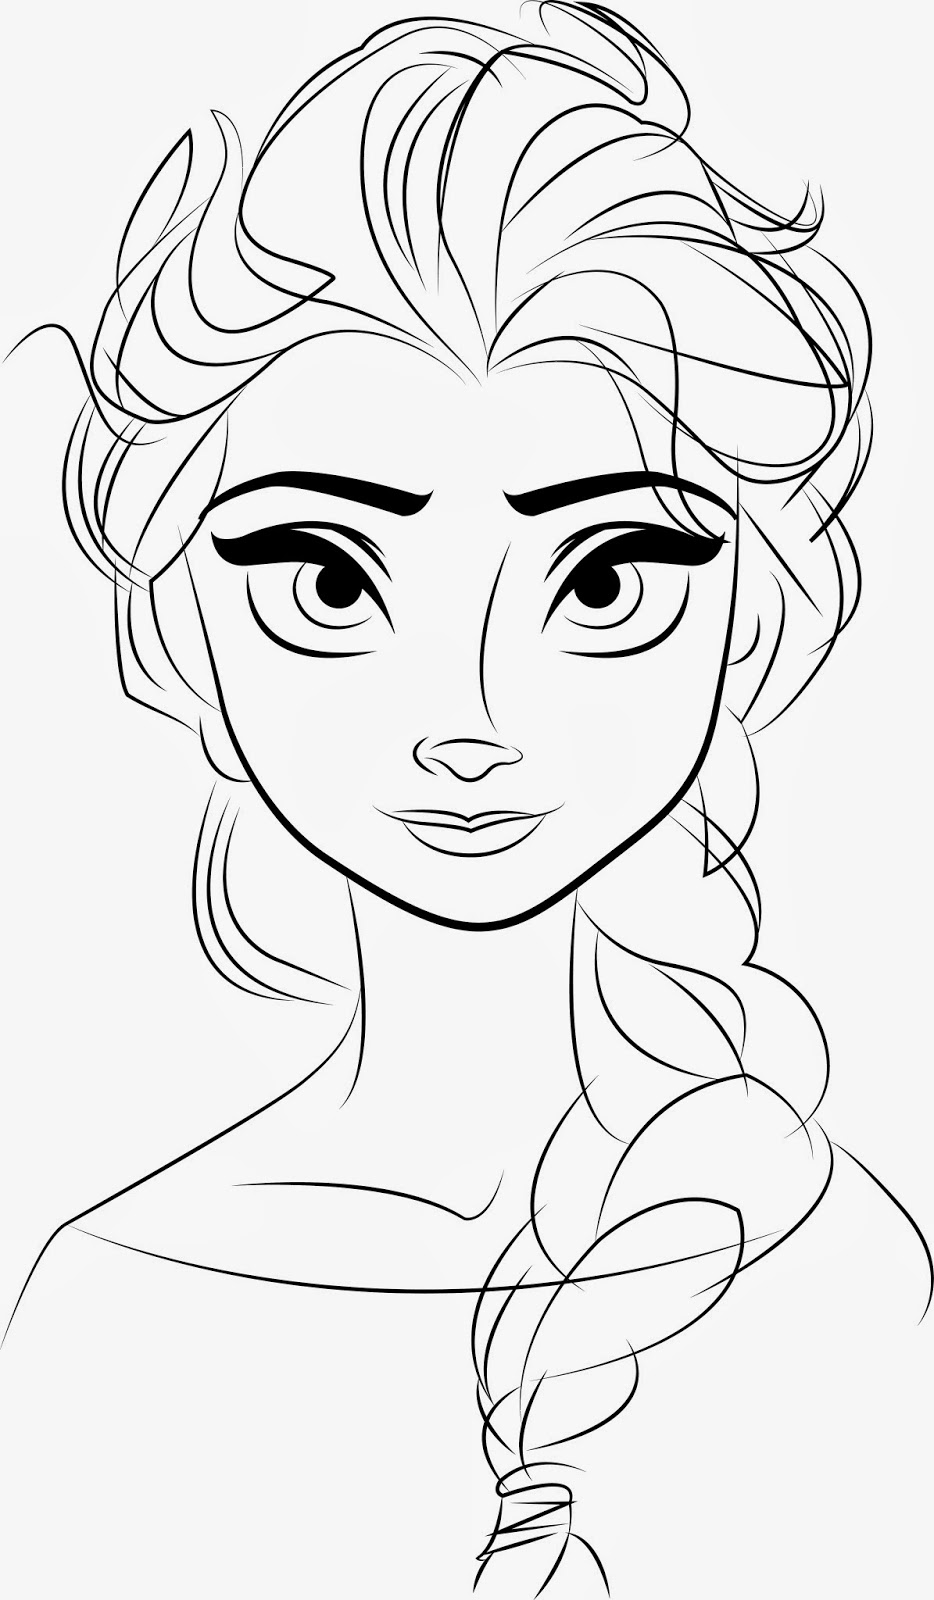 for coloring pictures free download to print beautiful spring flower coloring for pictures coloring